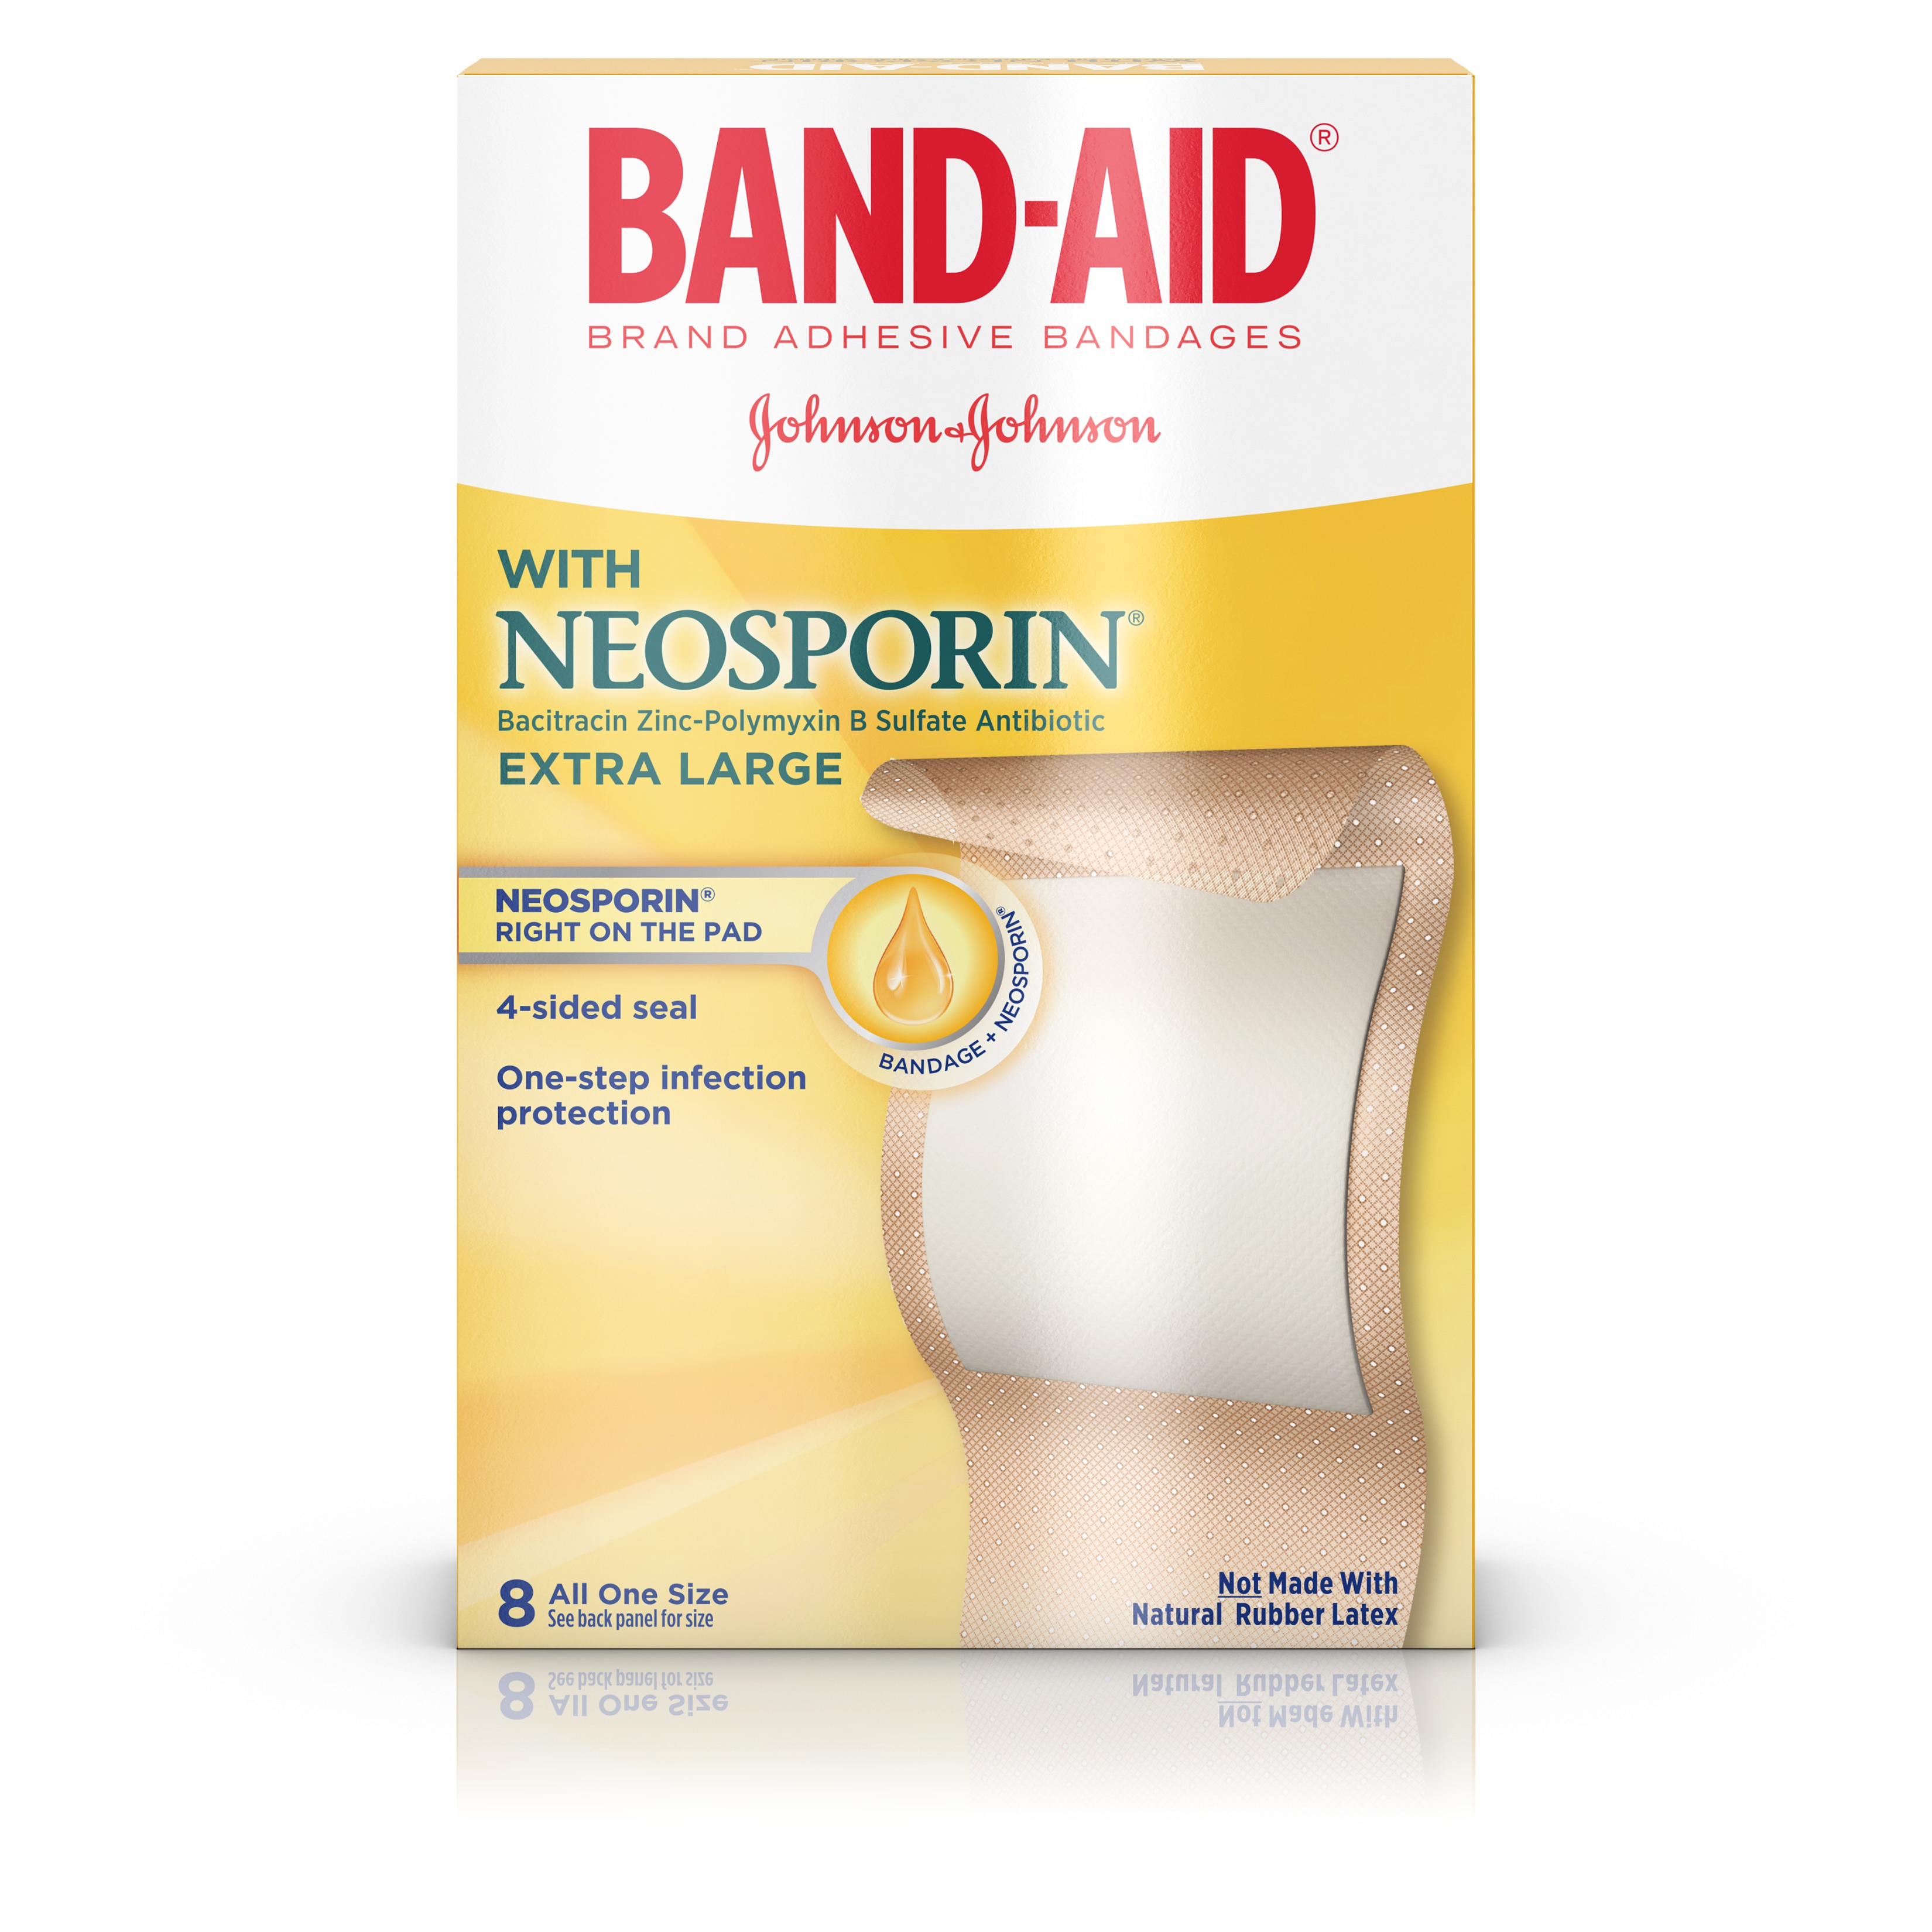 BAND-AID® Brand Adhesive Bandages Plus Antibiotic Ointment, Extra Large, 8 Count